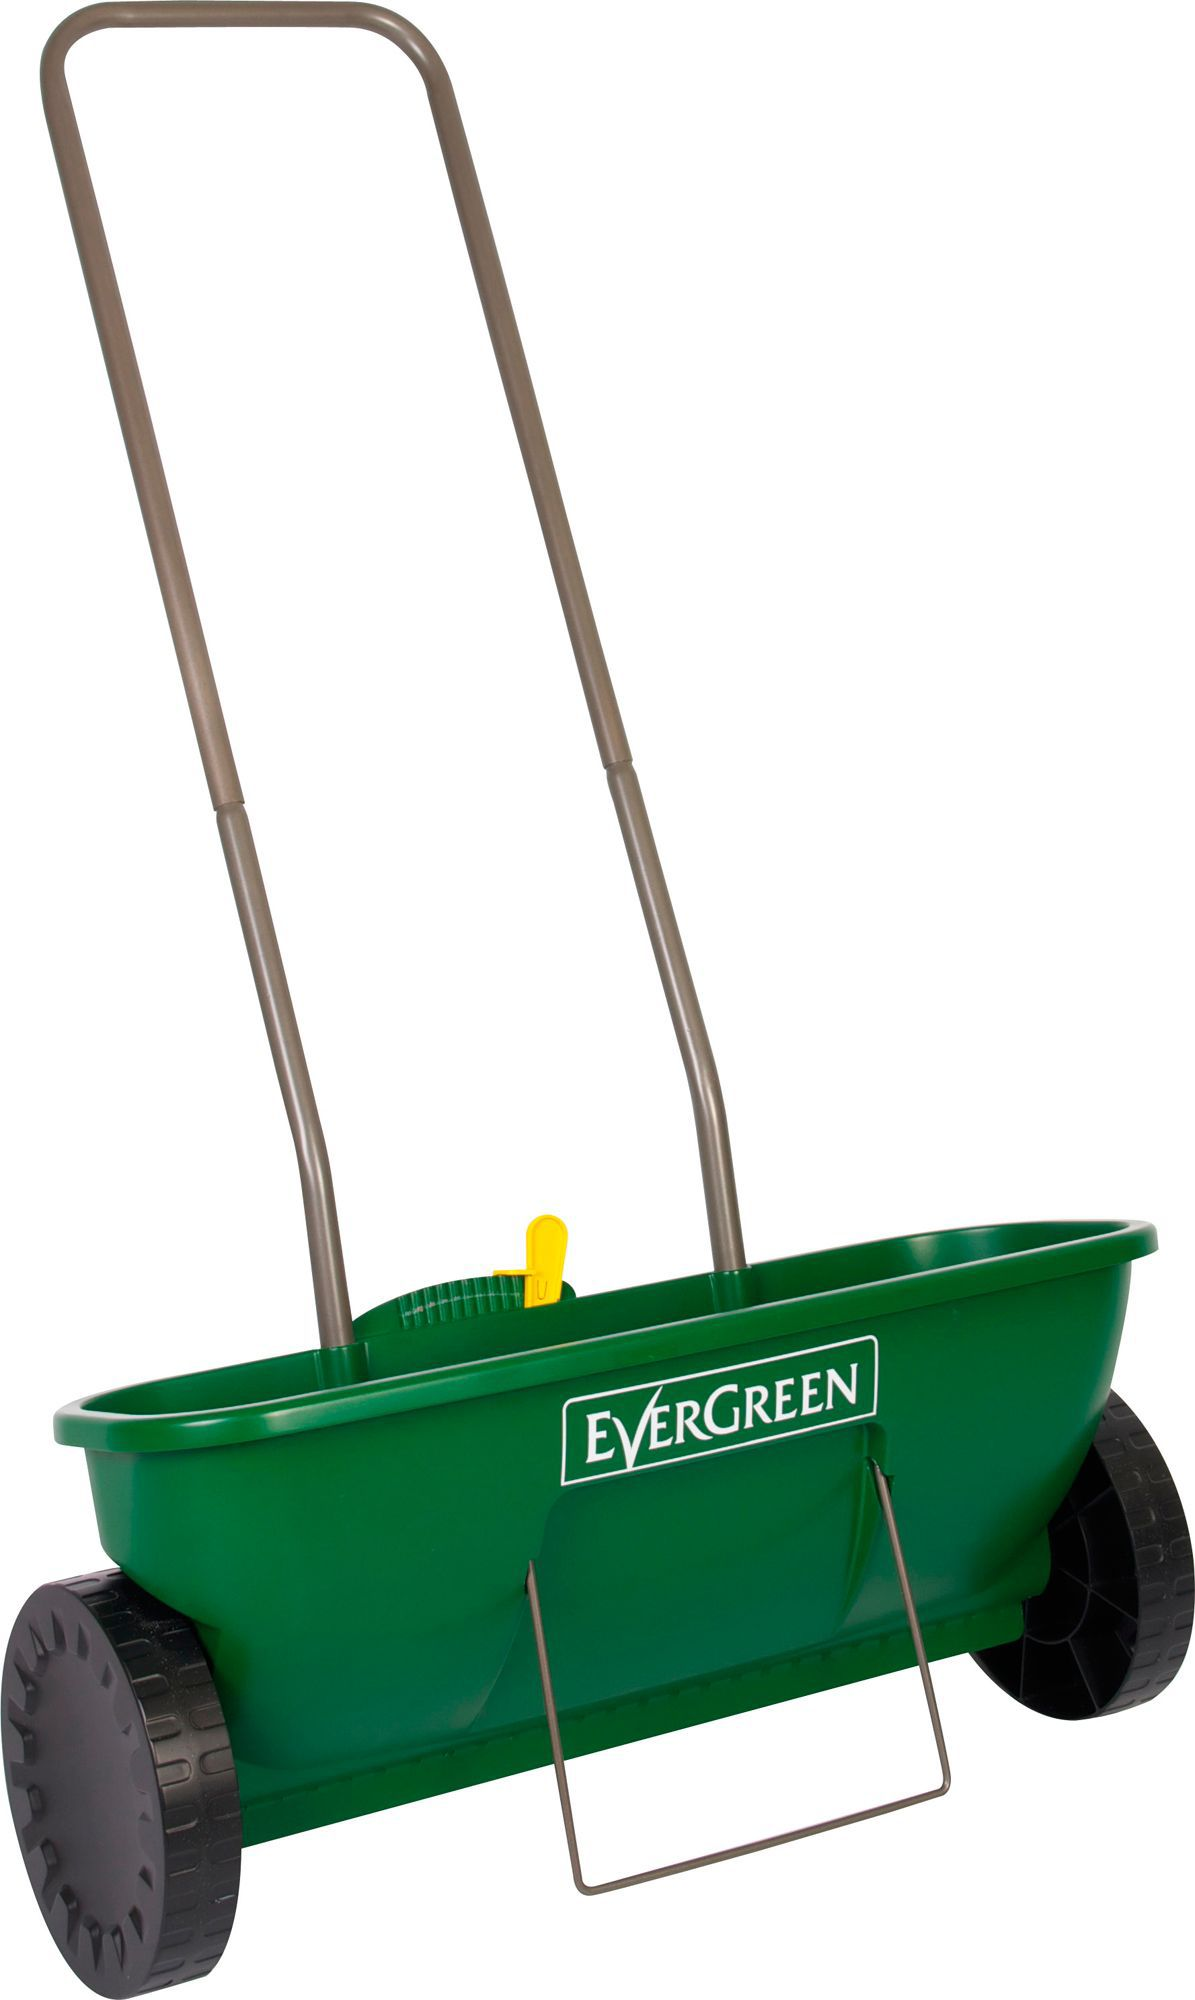 Evergreen Easy Lawn Spreader Departments Diy At B Amp Q